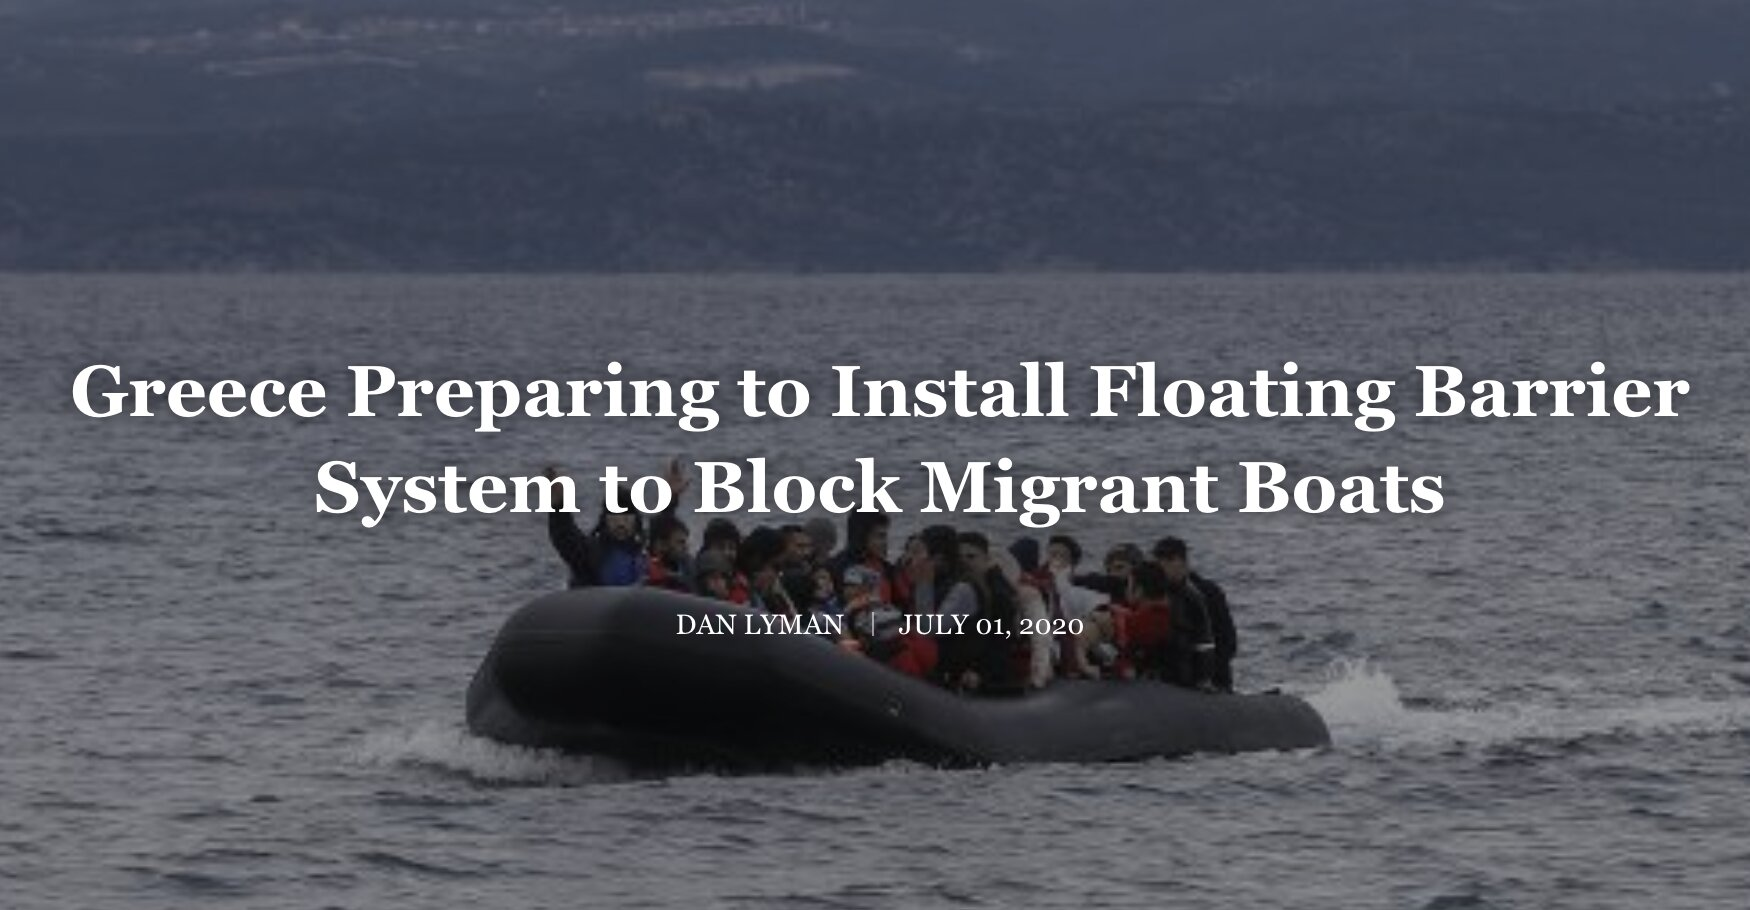 Greece Preparing to Install Floating Barrier System to Block Migrant Boats